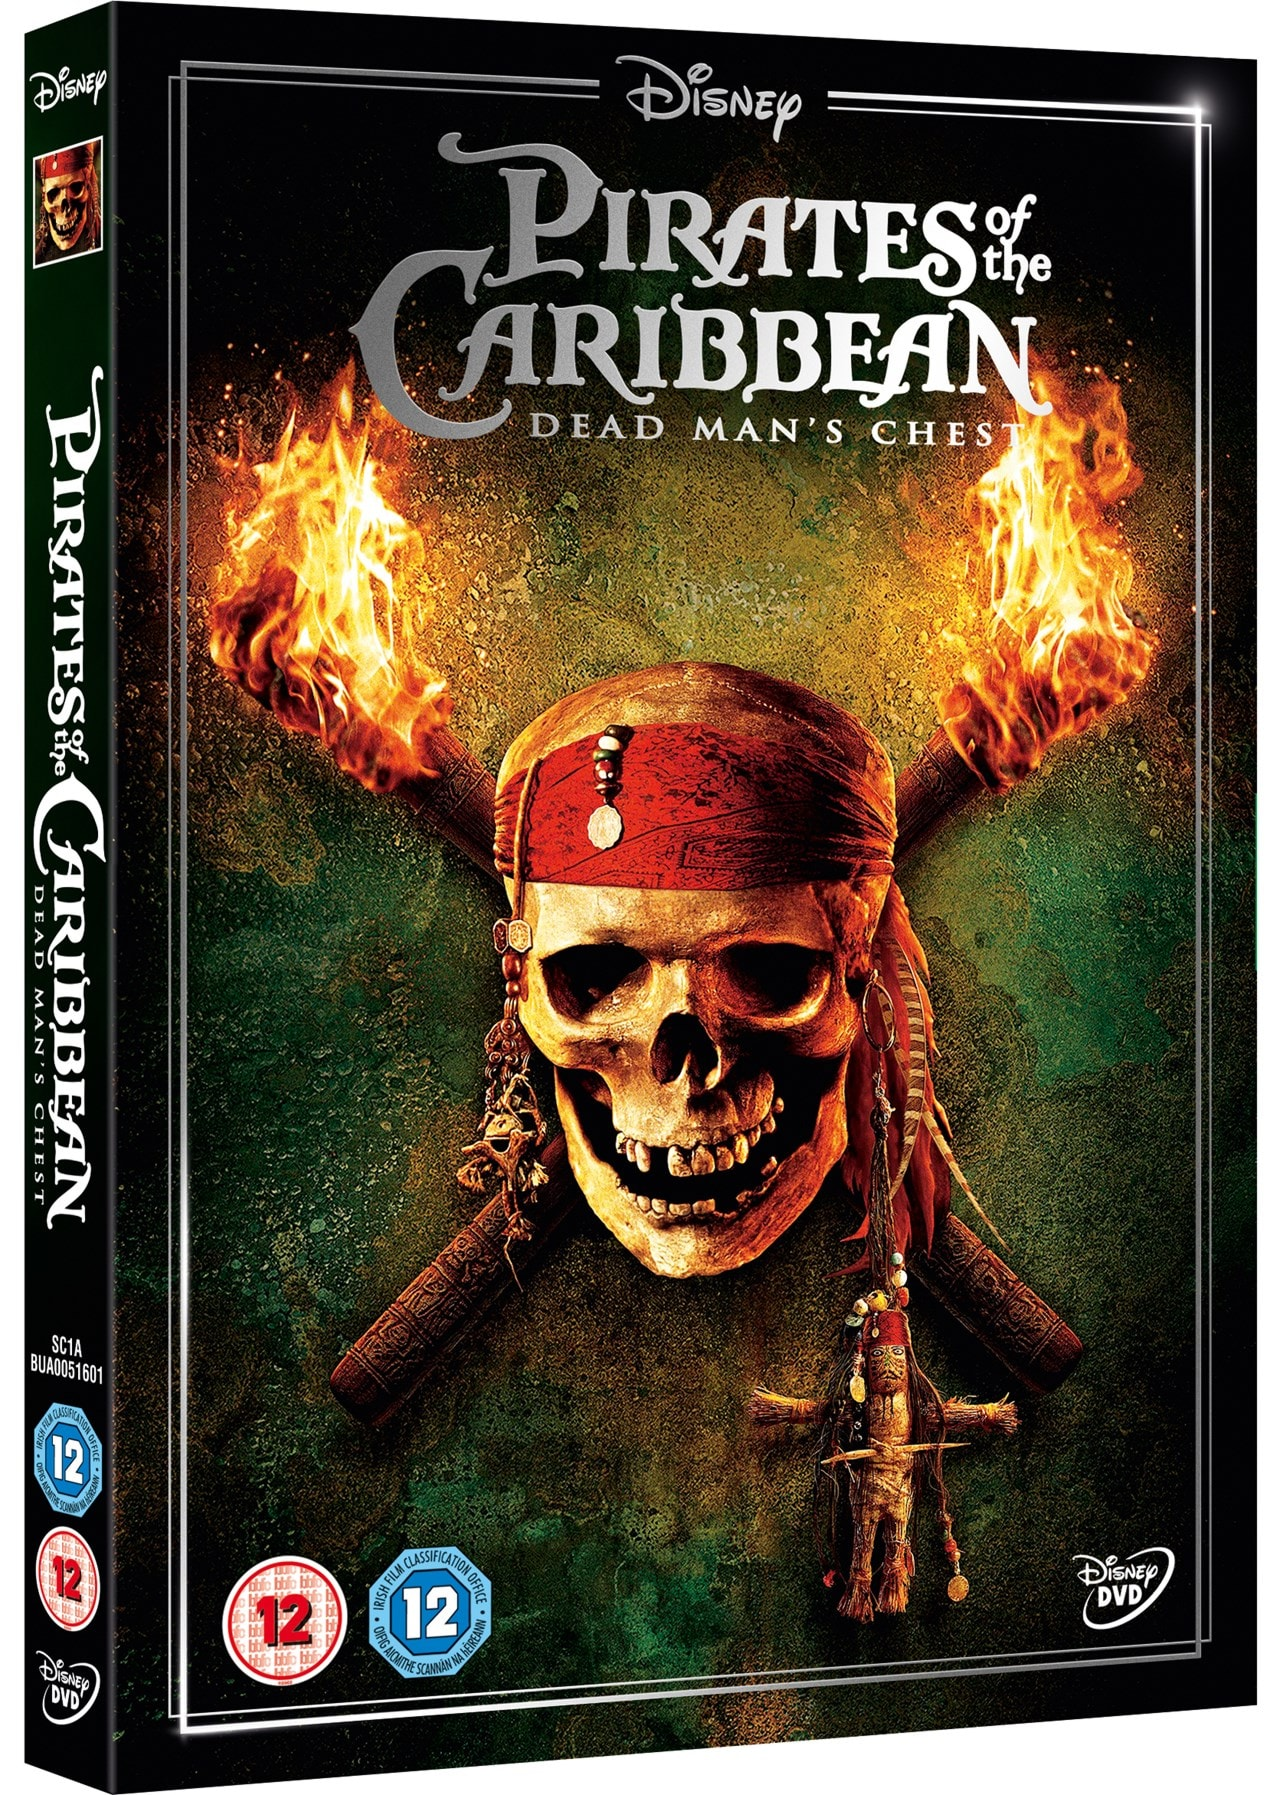 Pirates of the Caribbean: Dead Man's Chest - 2